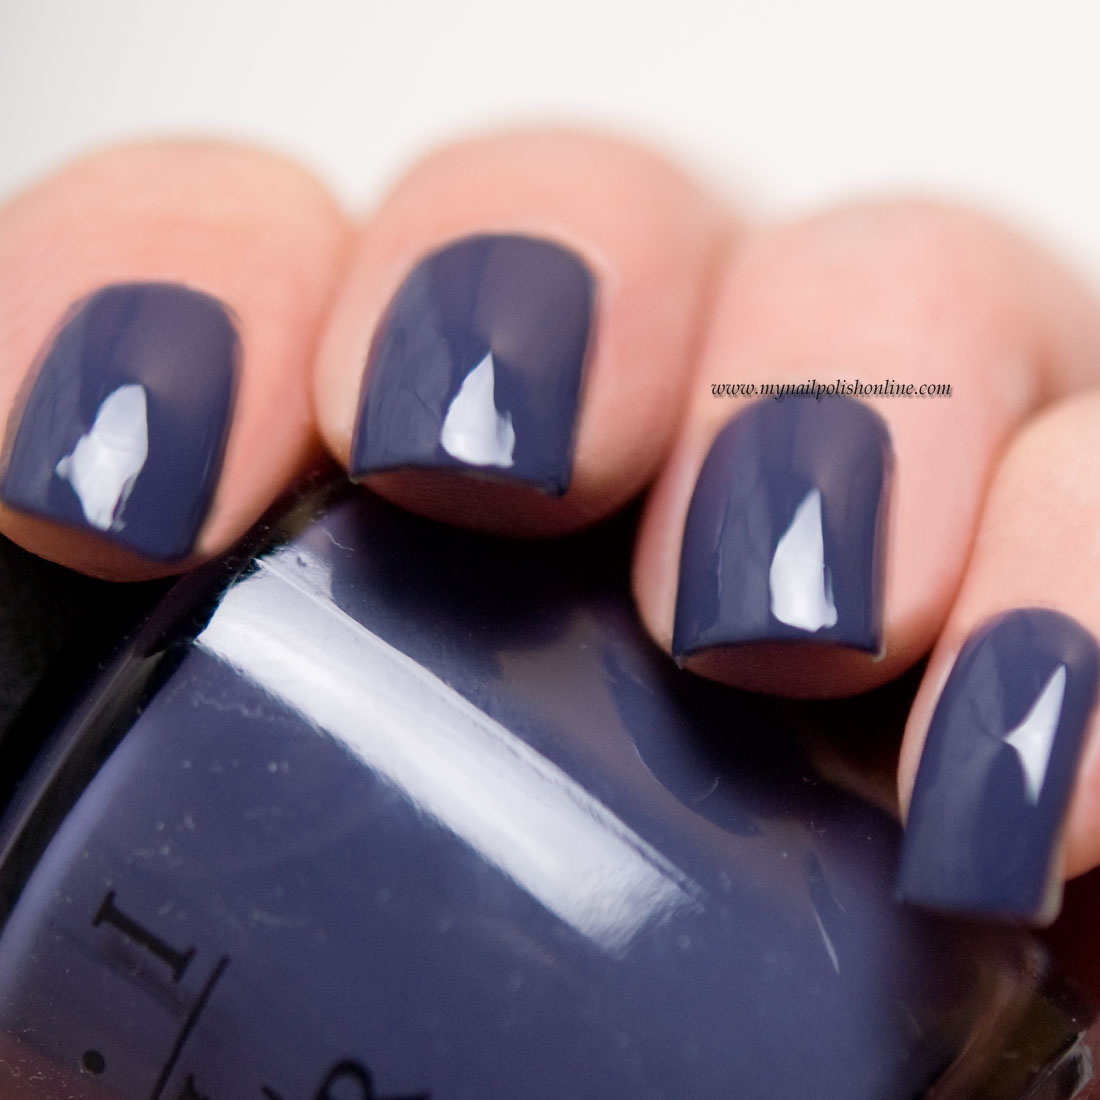 OPI - Less is Norse